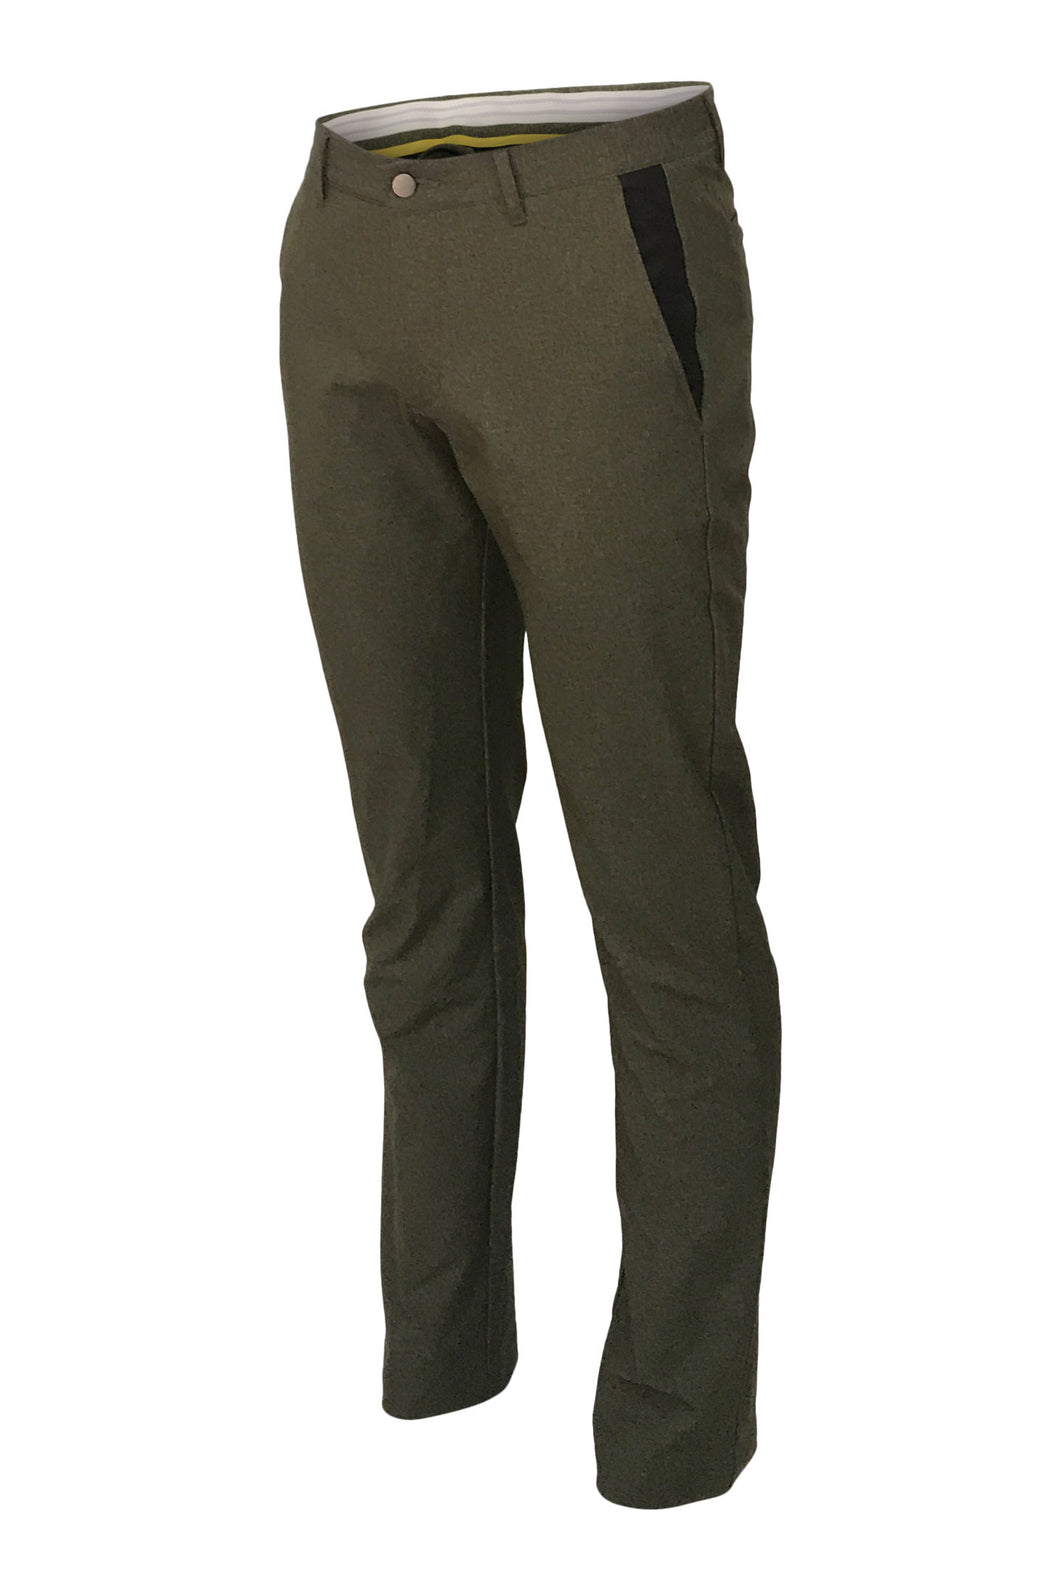 CLUBHOUSE PANTS - OLIVE GREEN